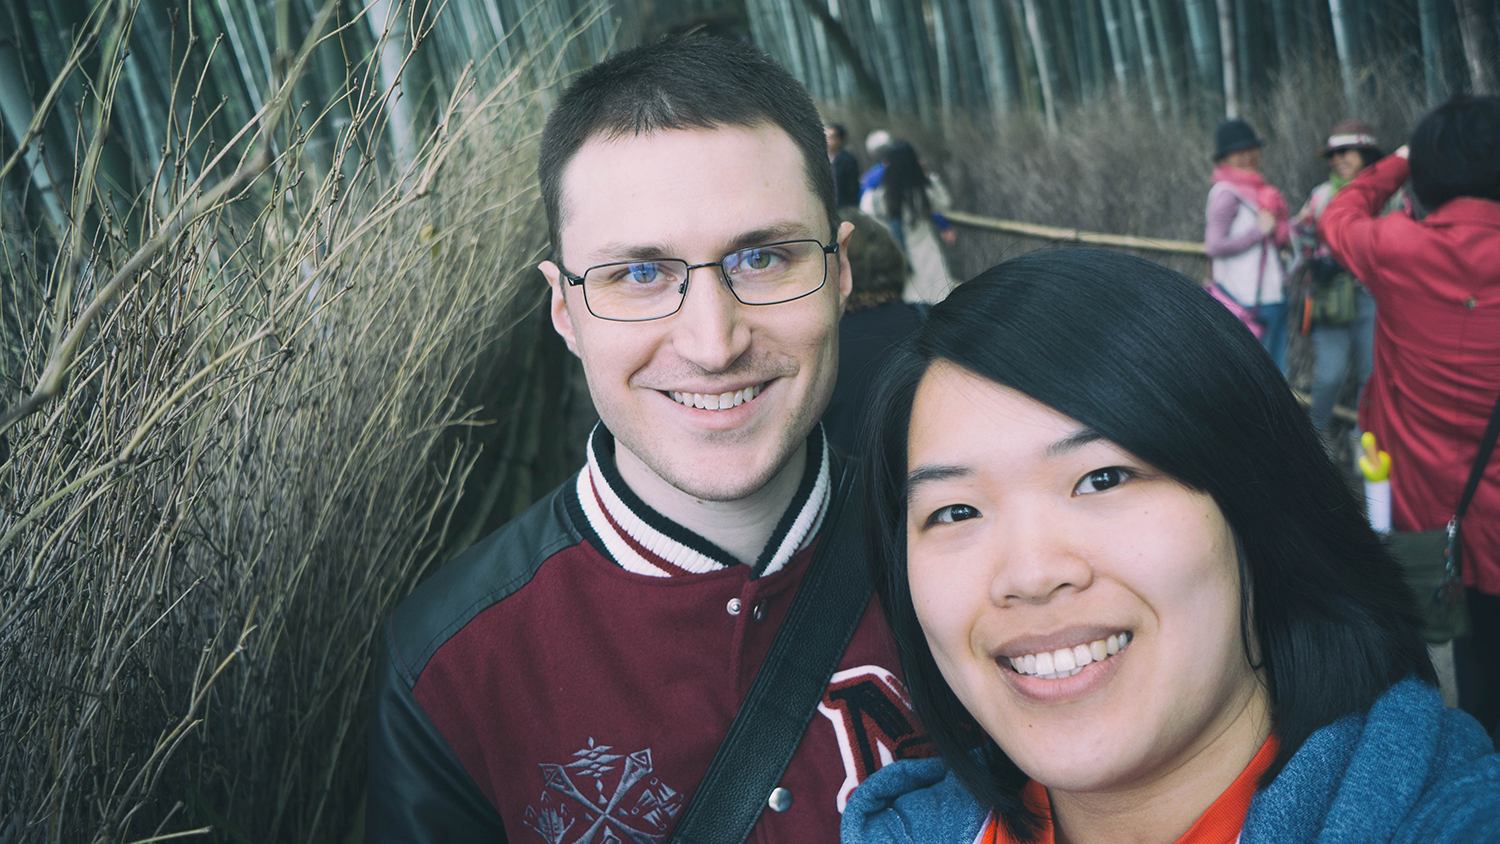 Reid and I at the Bamboo Grove.